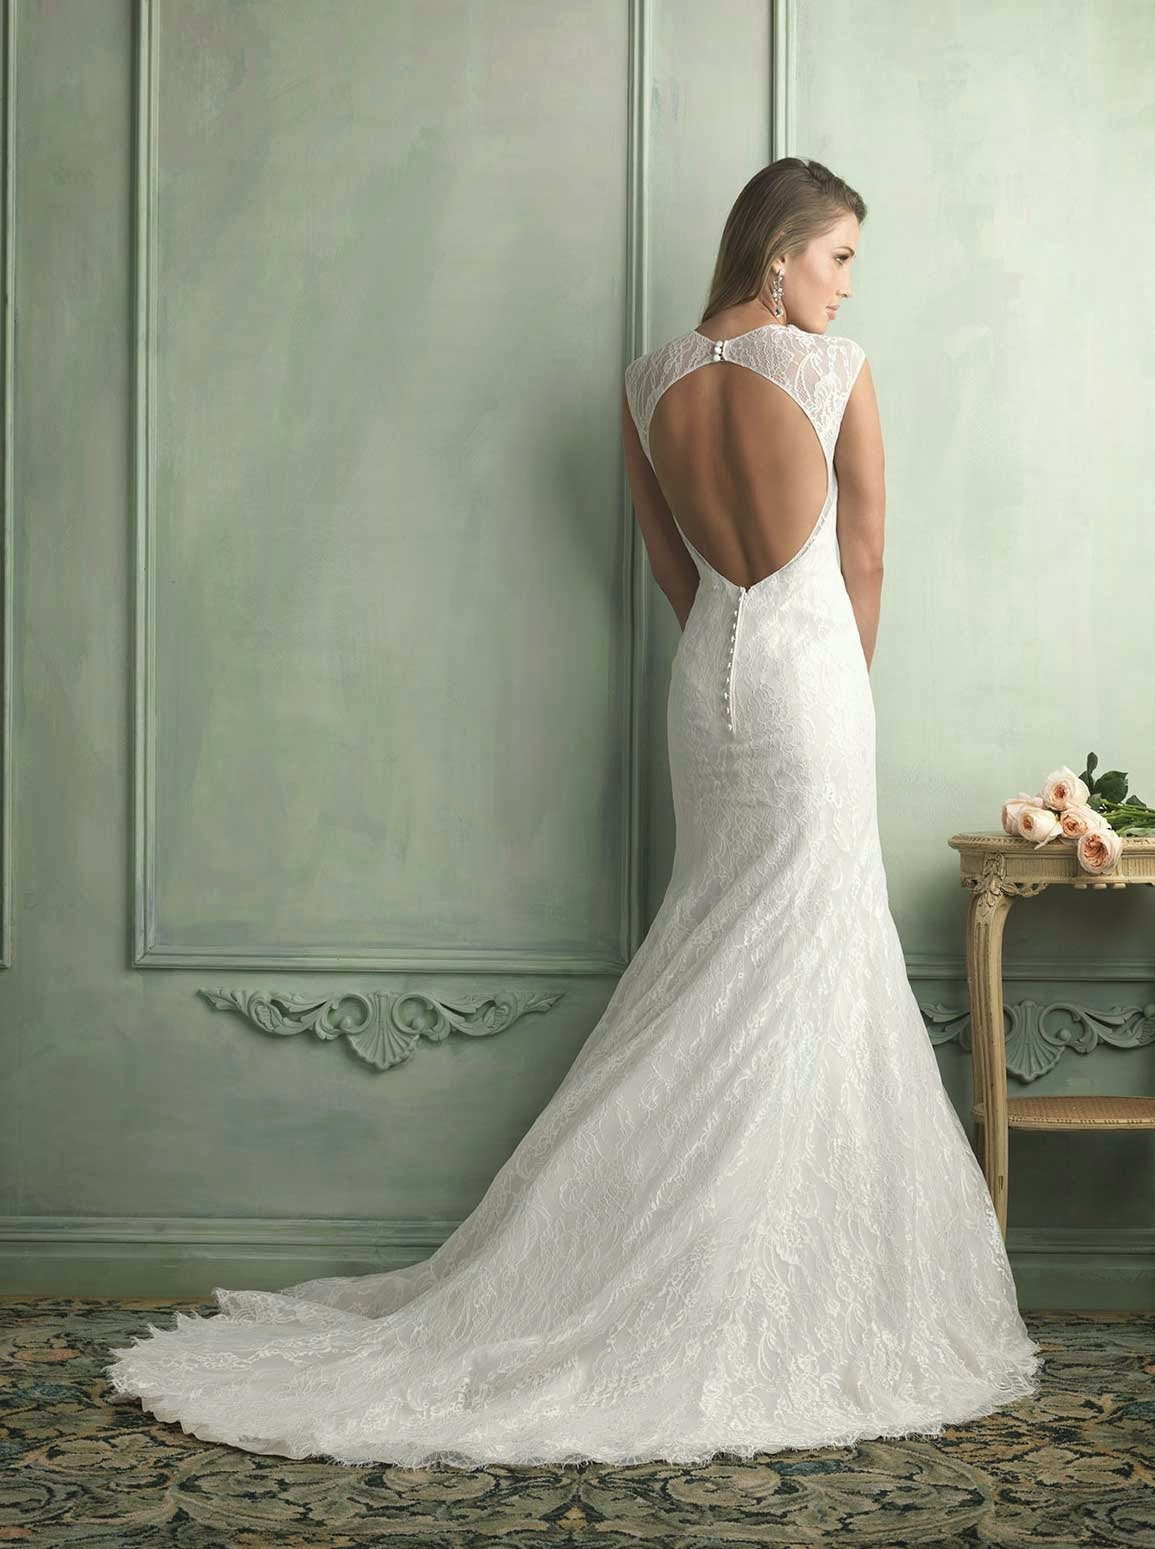 Backless white rose wedding dresses vera wang ideas for White vera wang wedding dresses